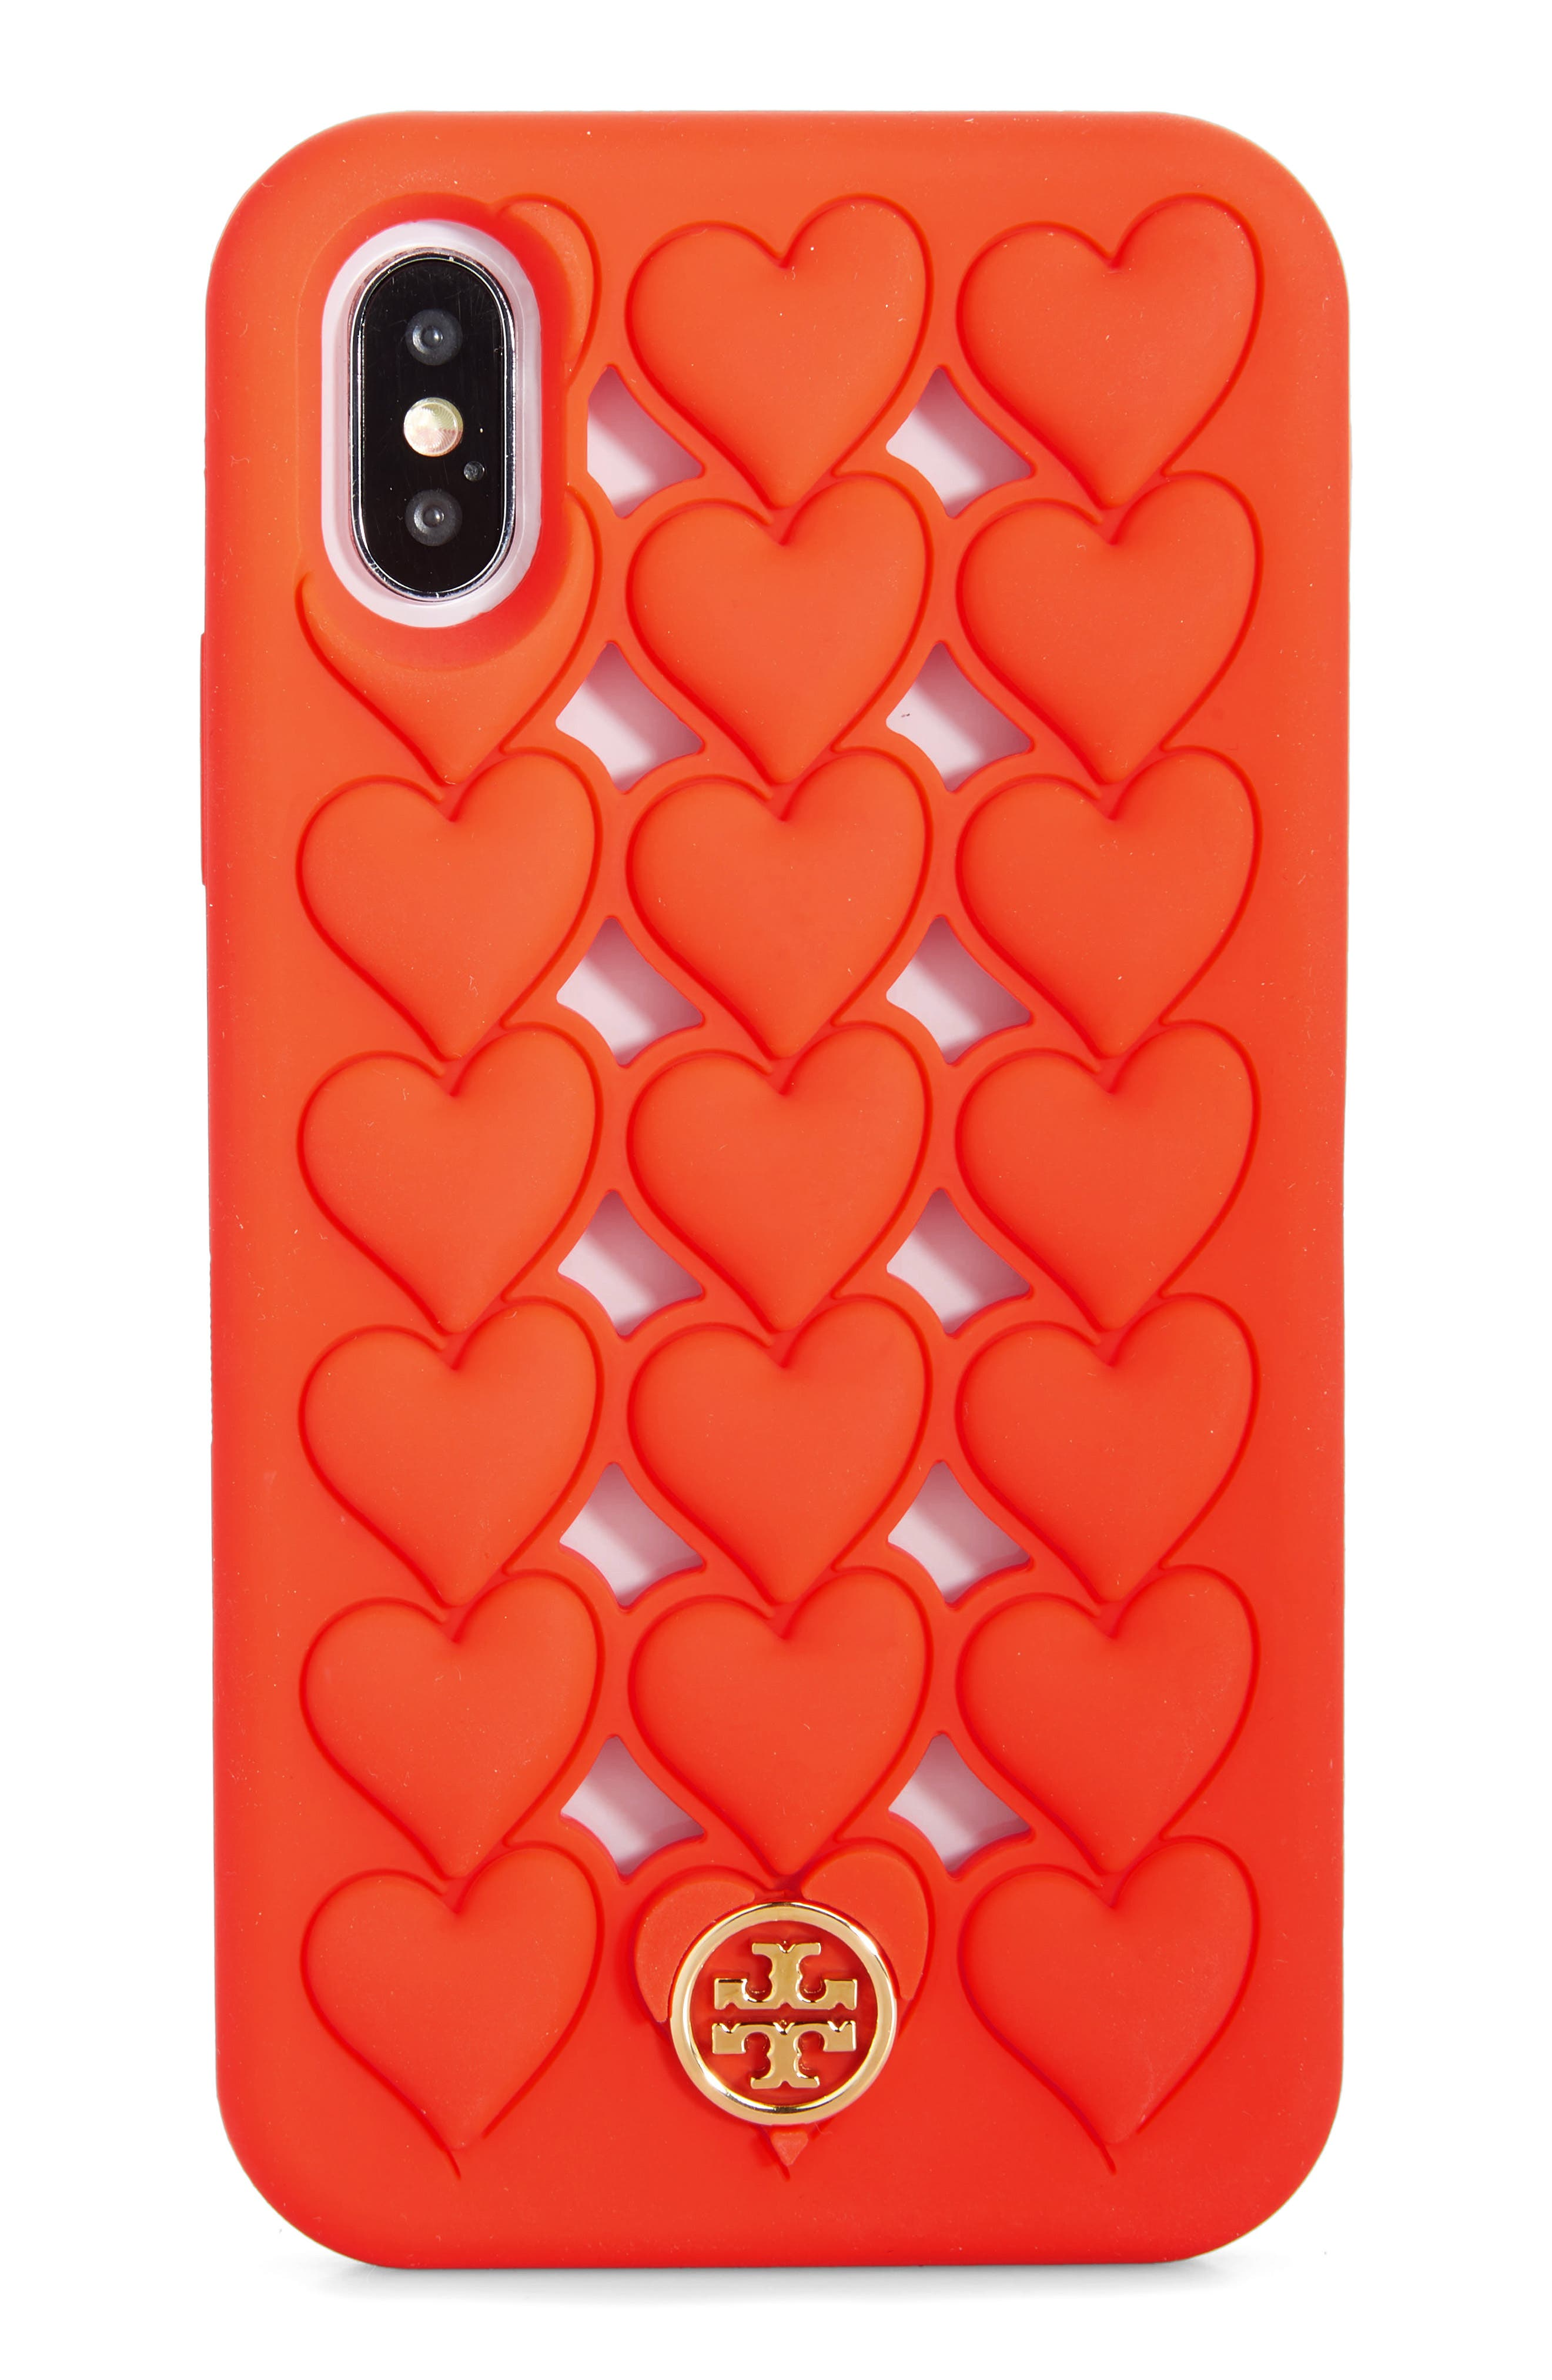 Tory Burch Bags Hearts Silicone iPhone X/Xs Case